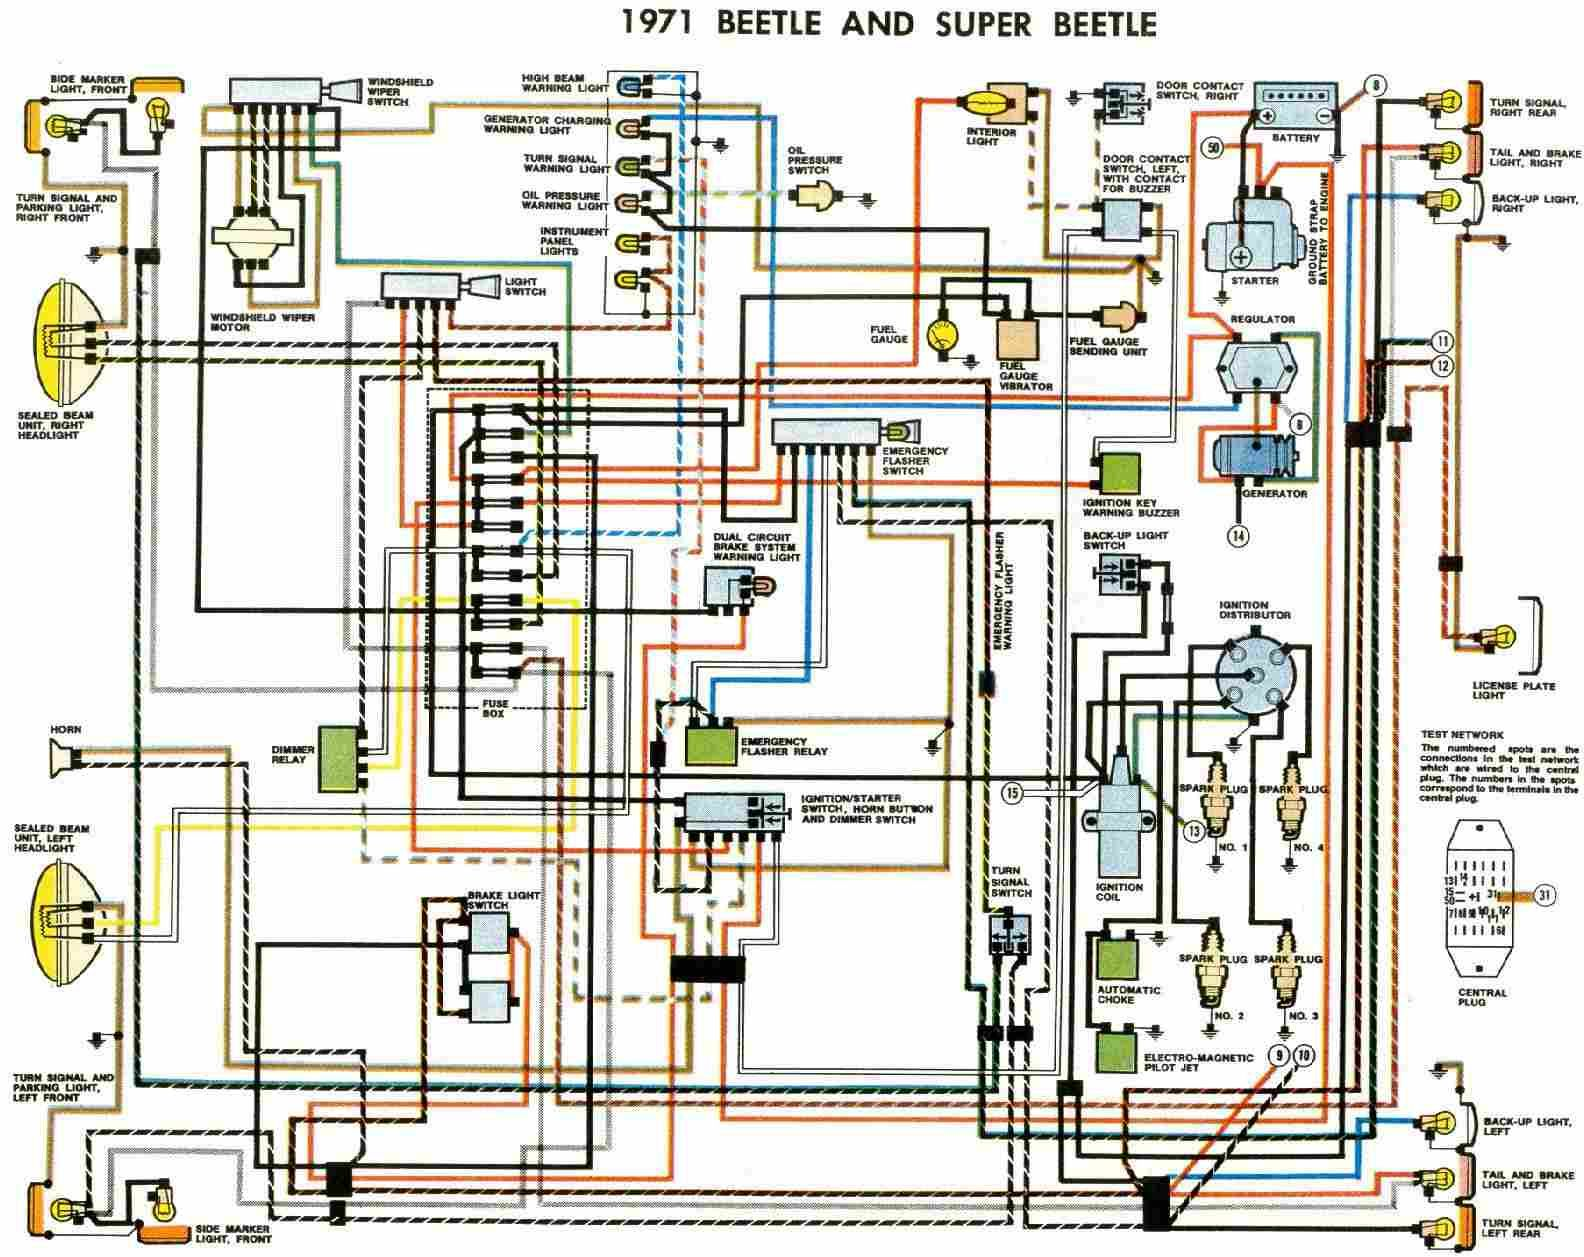 6379f2a777a0eb1b27fdba46670ceb6a free auto wiring diagram 1971 vw beetle and super beetle byocar 1971 vw bus wiring diagram at crackthecode.co